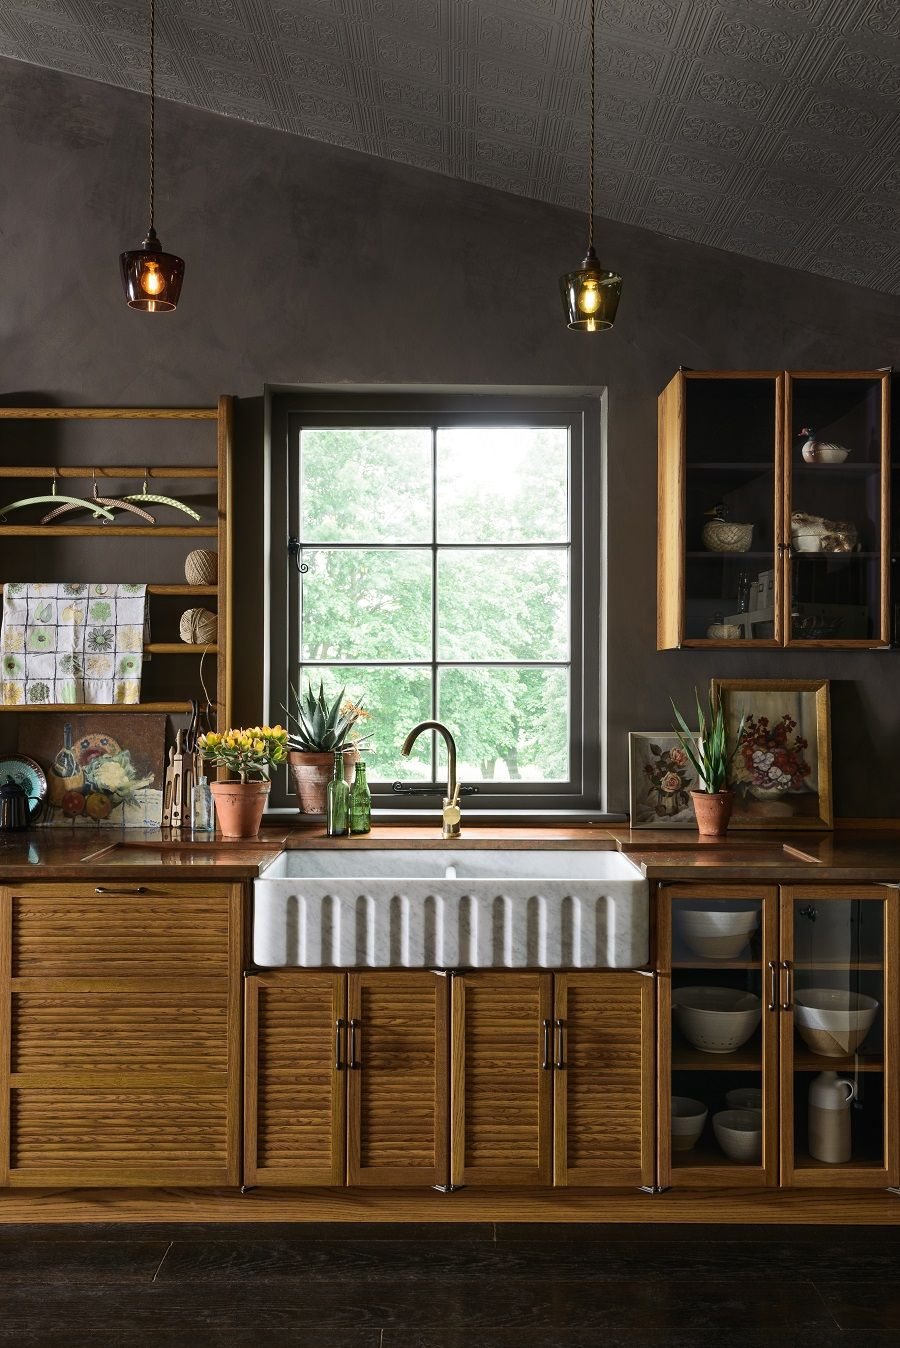 When Does a Kitchen Not Look Like a Kitchen Decor, Devol